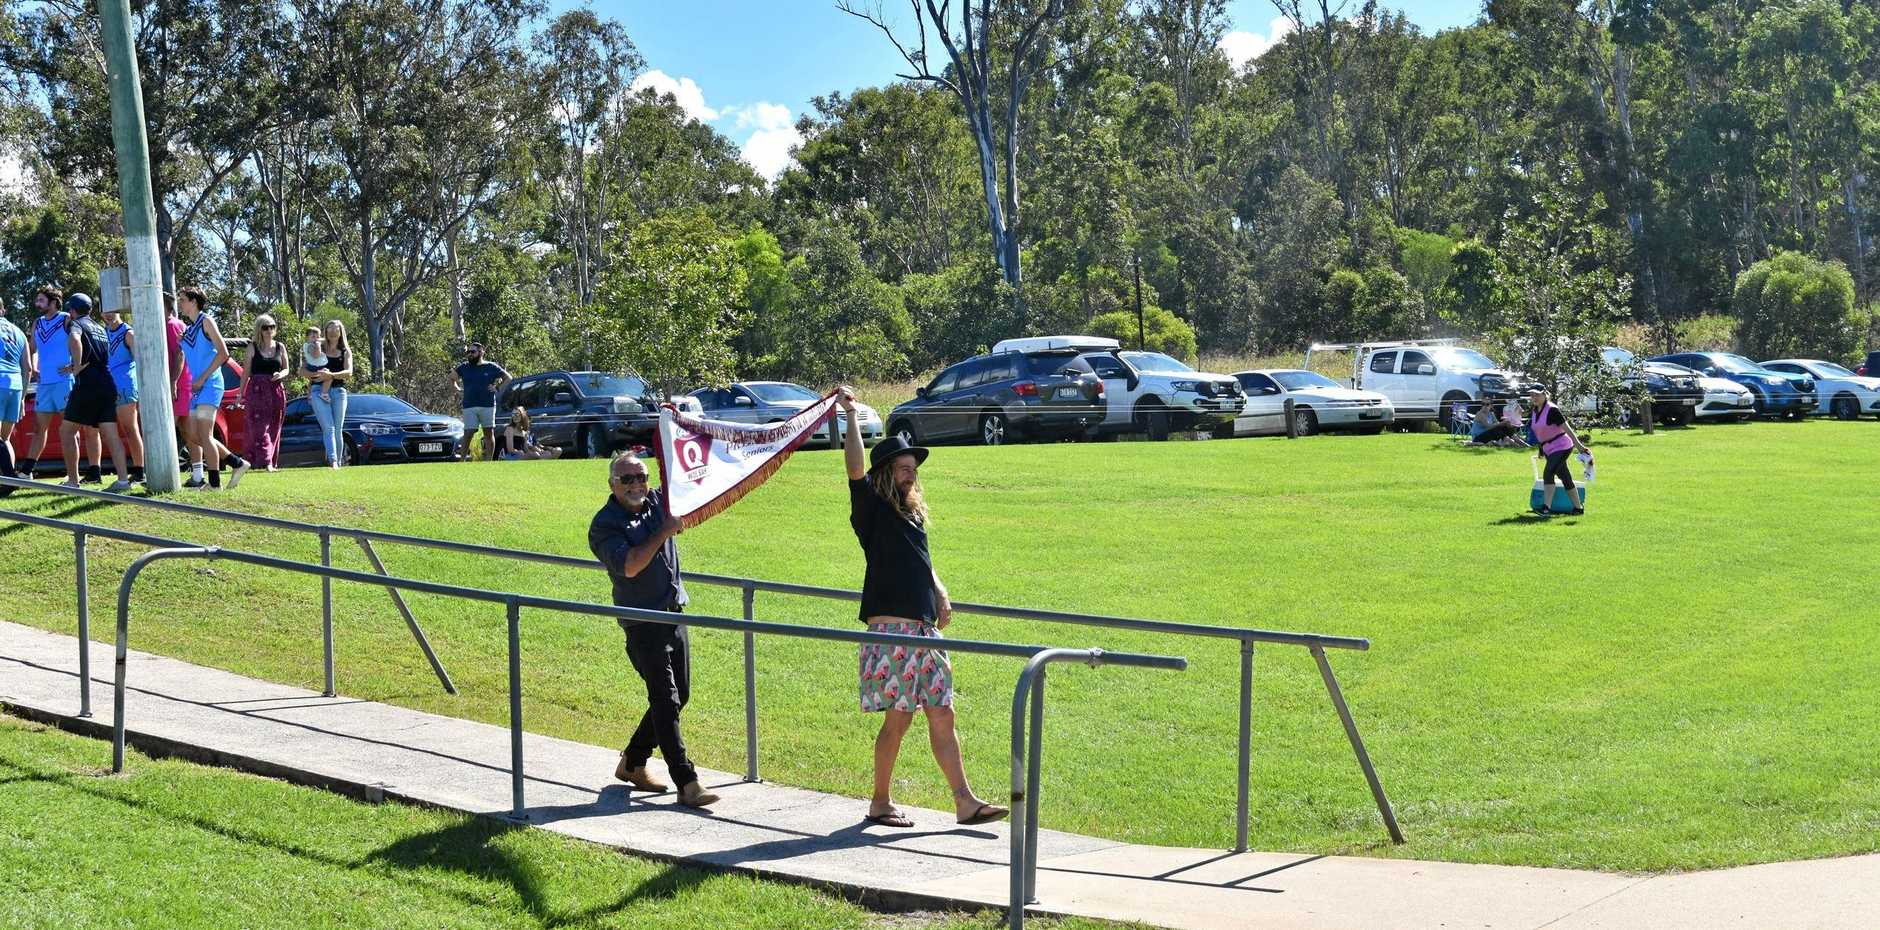 Gympie Cats life member Ray Warren and Cats midfielder Lanze Magin unveil the 2018 Wide Bay Premiership Flag to the supporters at their first home game of 2019.